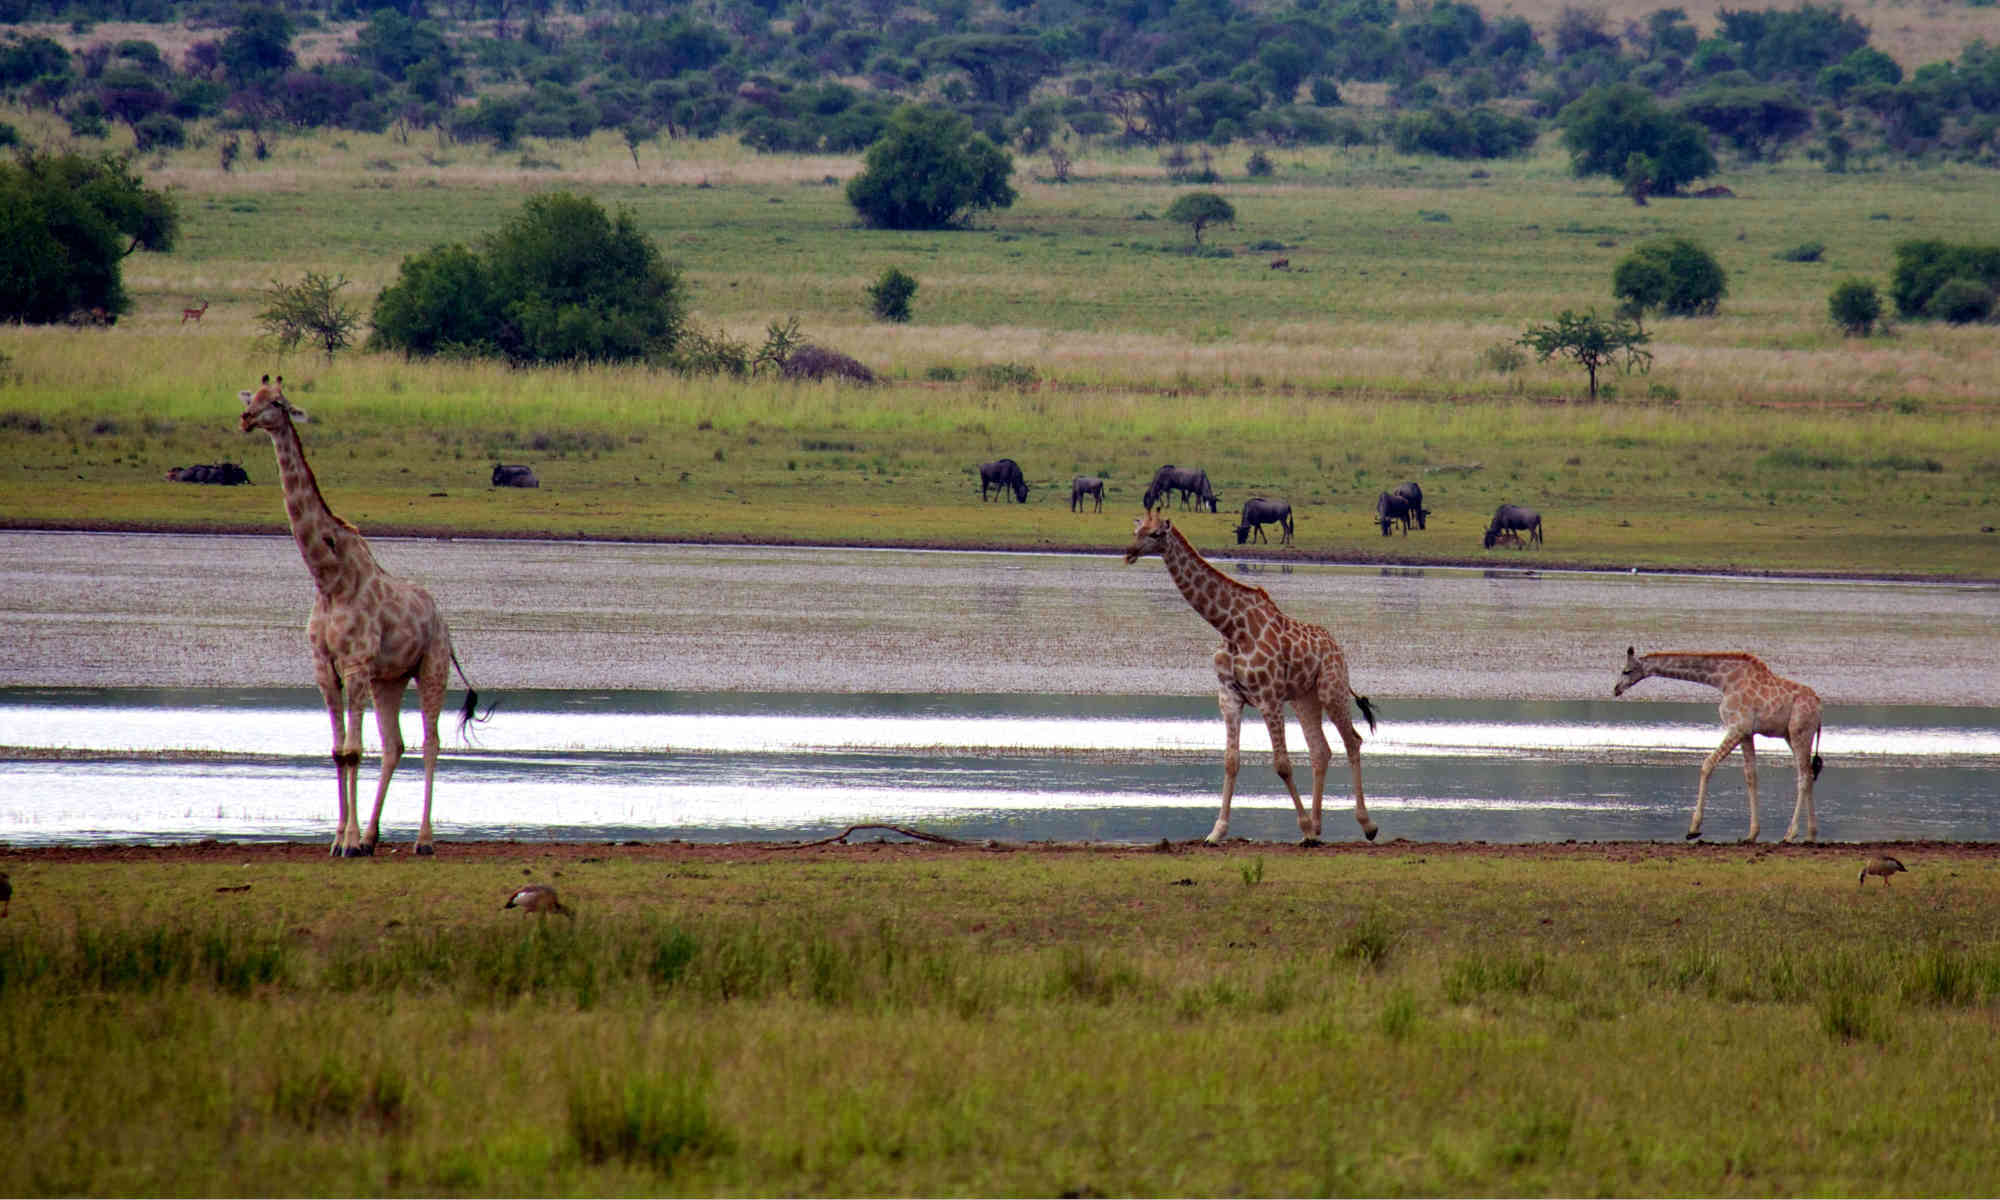 giraffe family at watering hole with wildebeest across the water